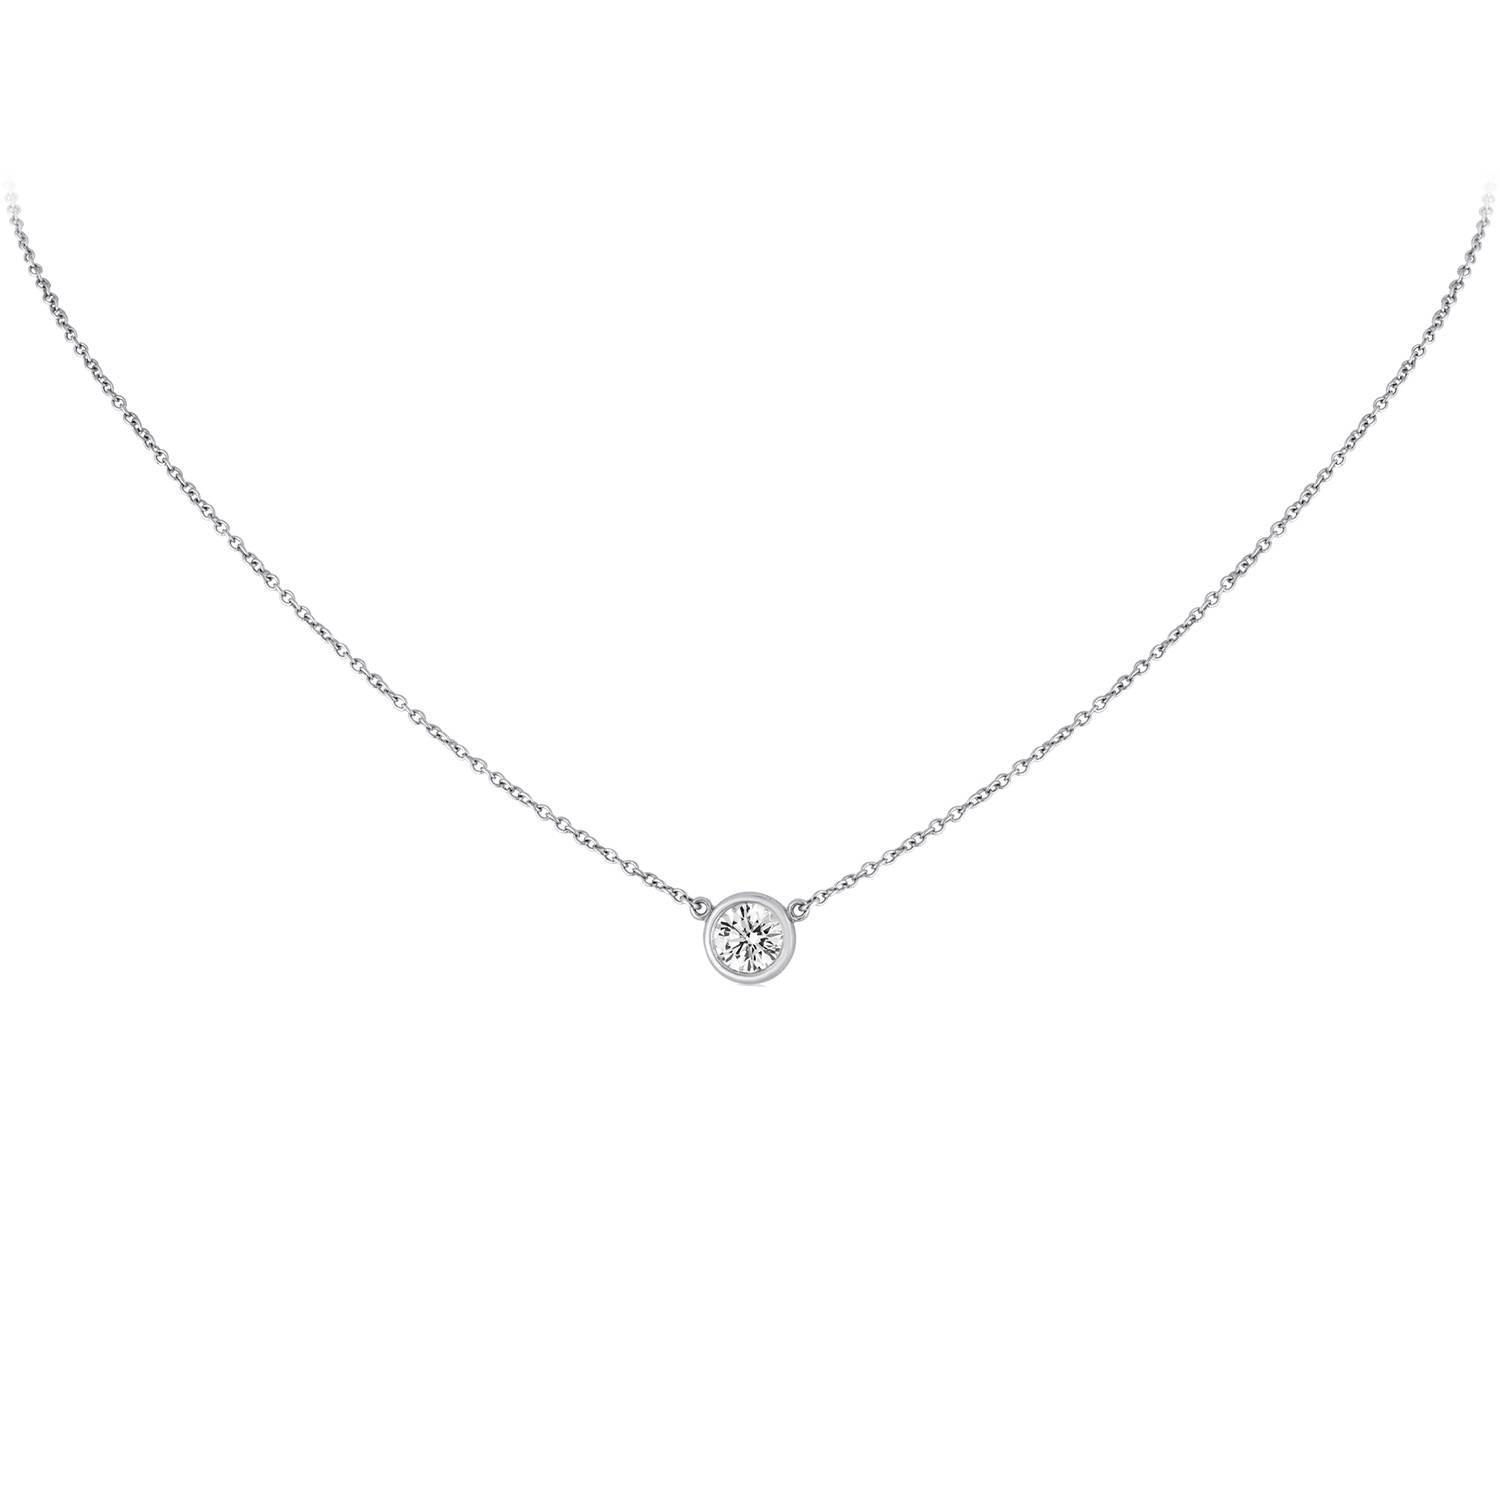 forward pendant item click to enhancer expand diamond sale necklace solitaire full with spring